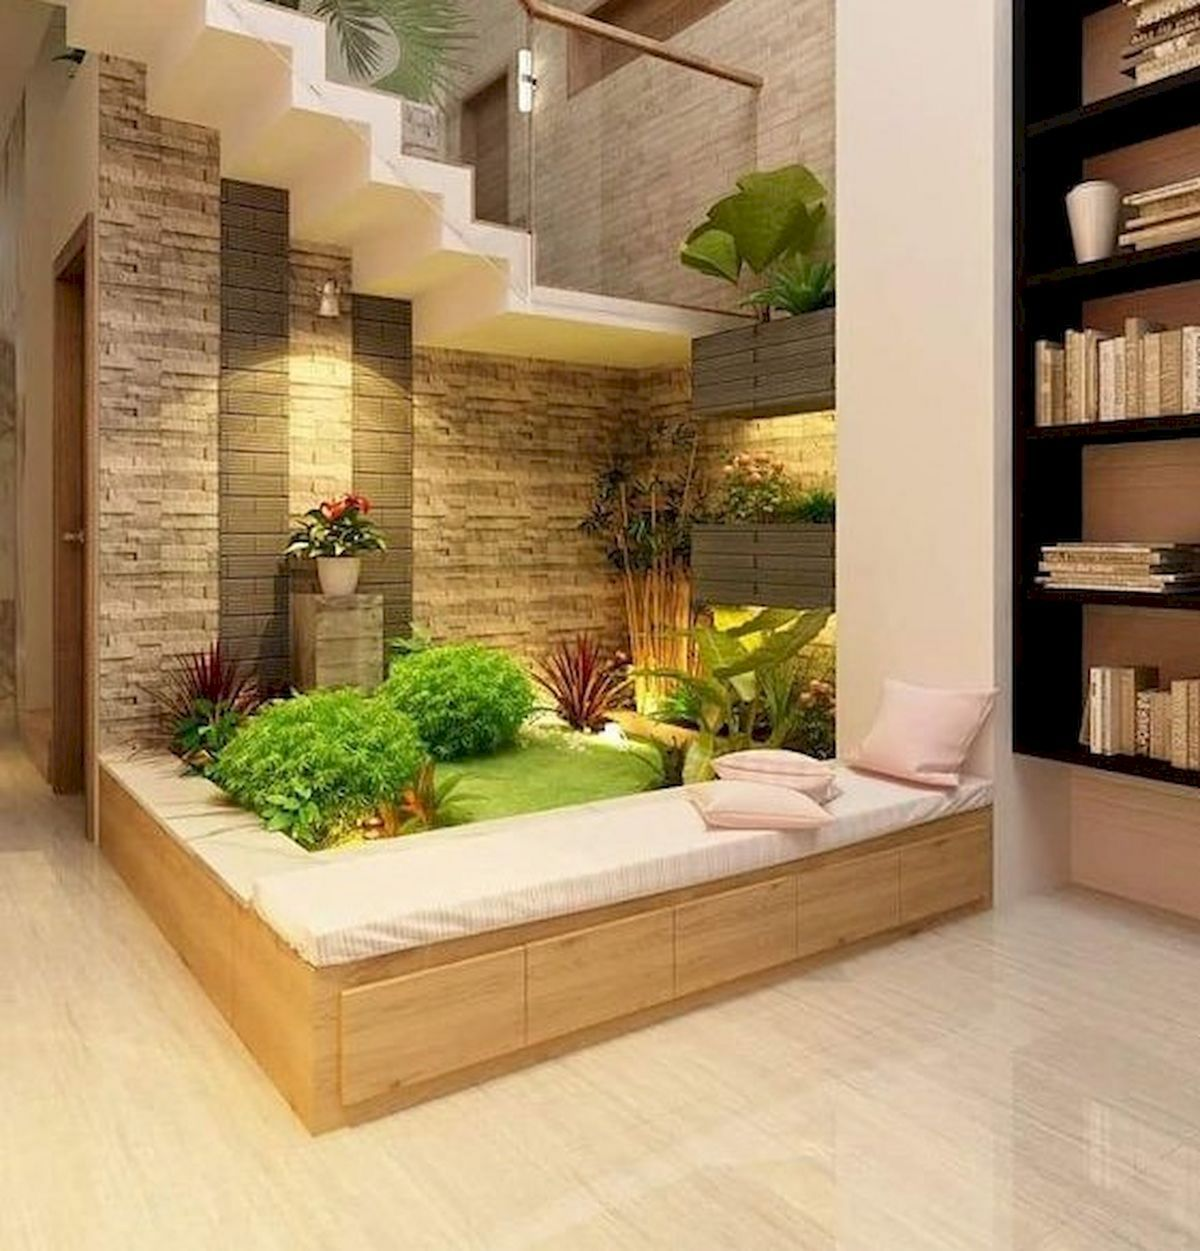 15 Perfect Indoor Garden Design Ideas For Fresh Houses — Design & Decorating is part of Interior garden - Having your own garden at home is one of the dreams of many people  The presence of the park will make the house feel more beautiful and look aesthetically